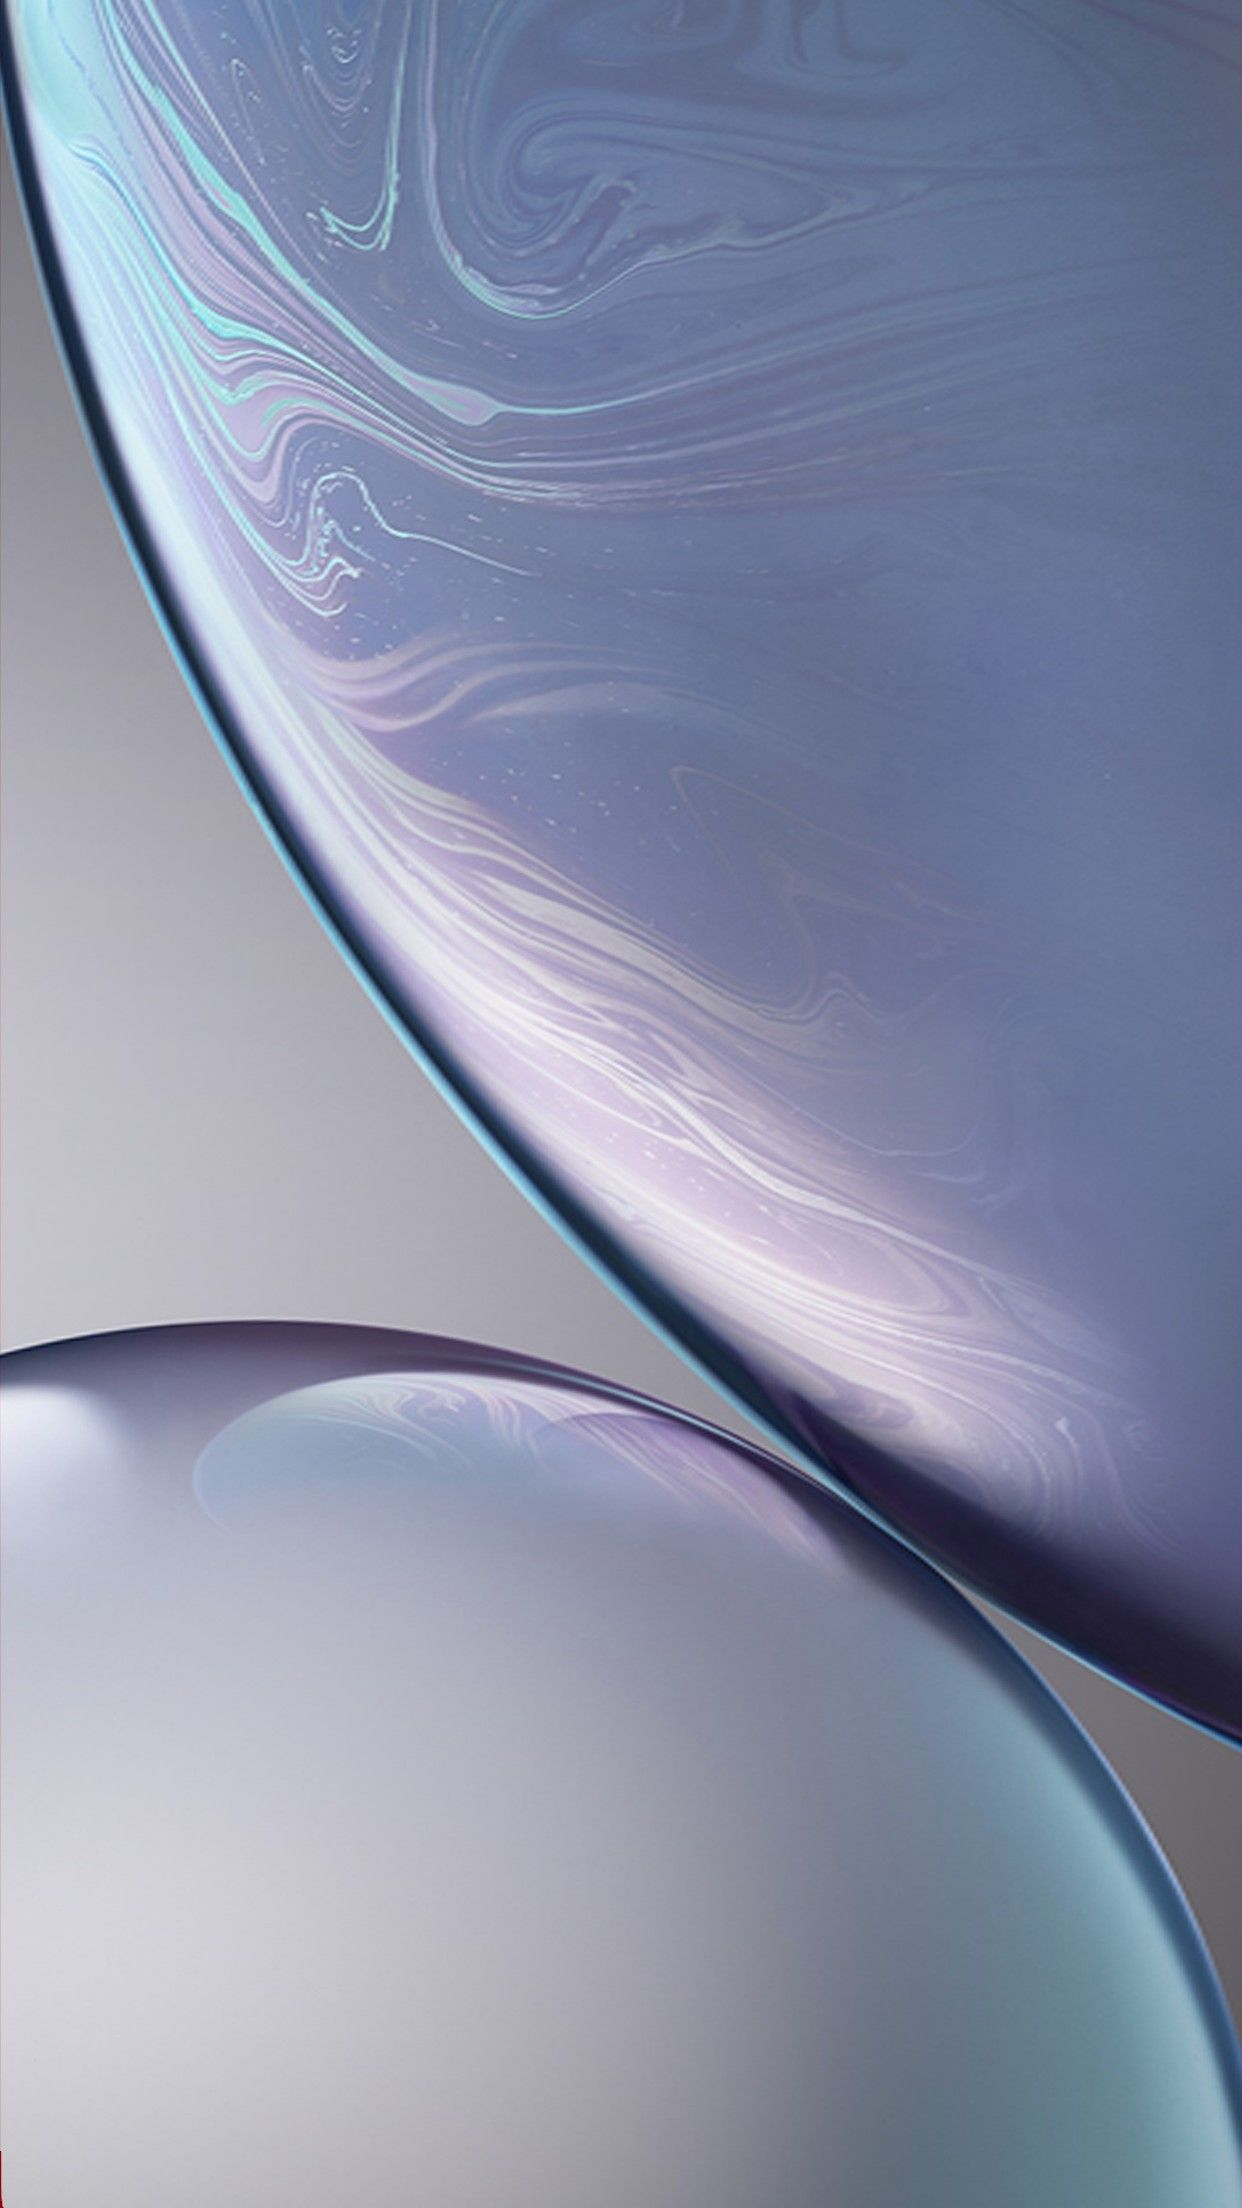 iPhone XR Iphone 7 plus wallpaper, Original iphone